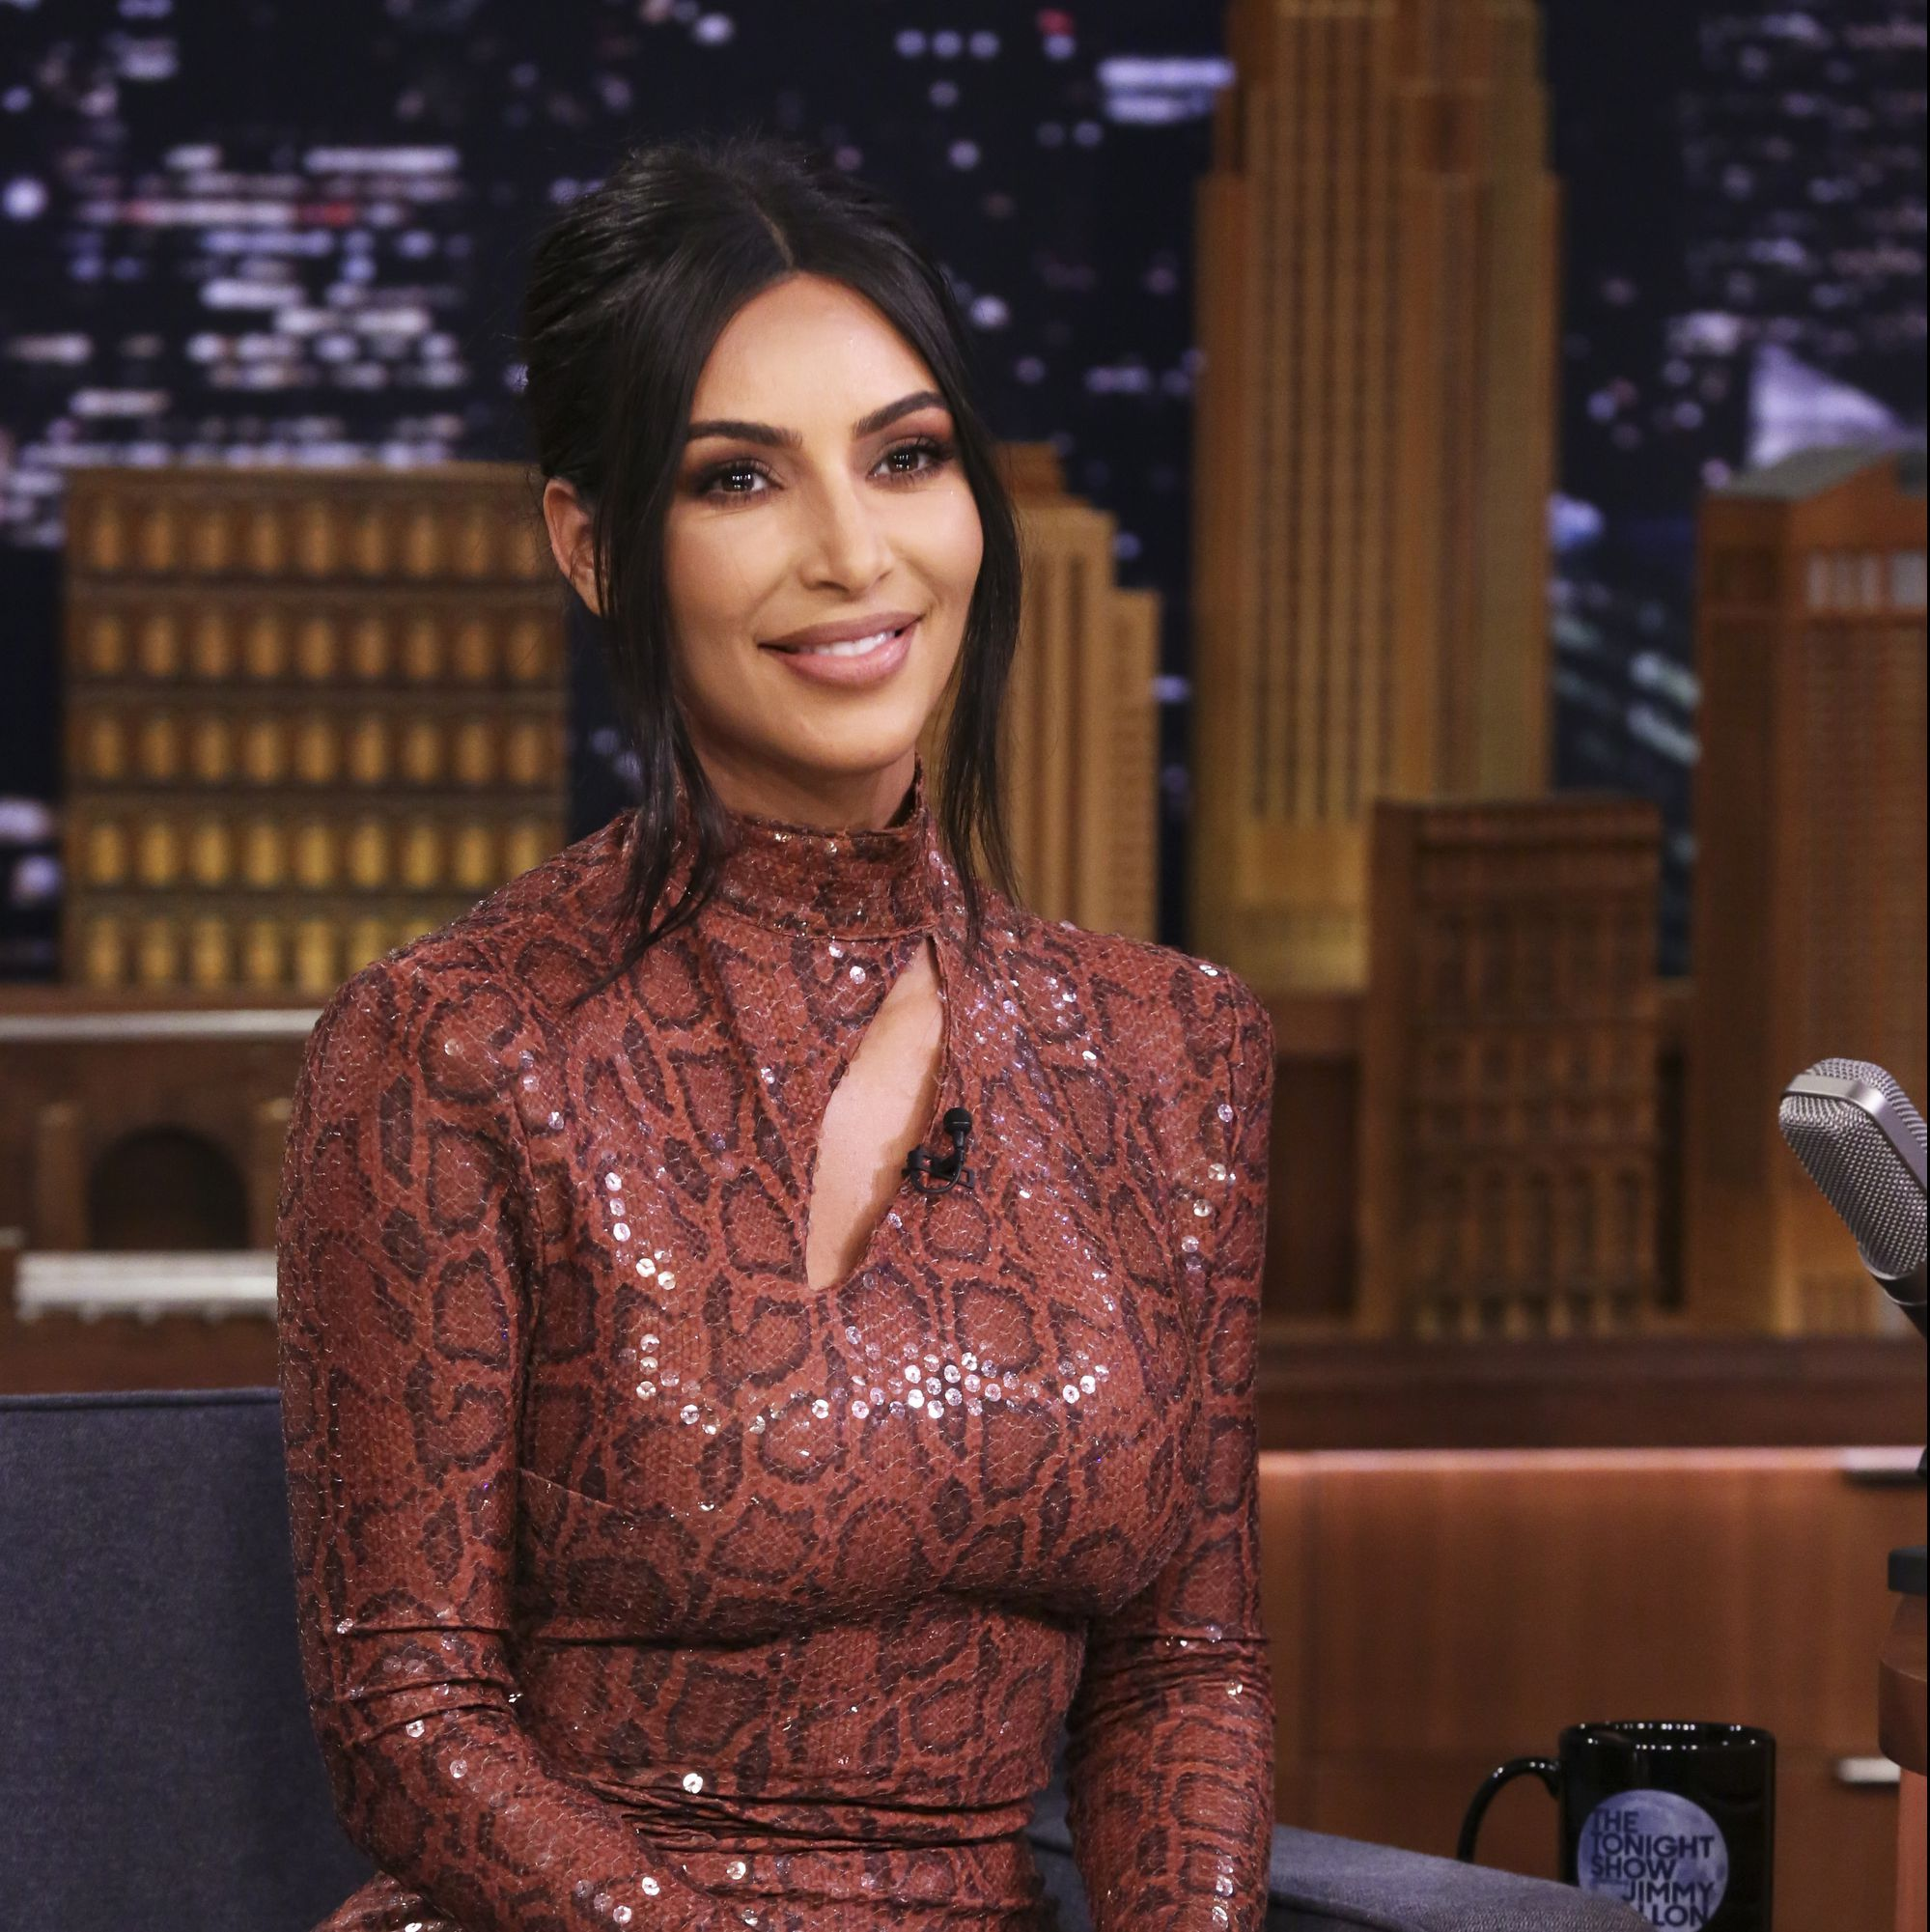 Kim Kardashian Finally Explains Her Basin-Less Sink